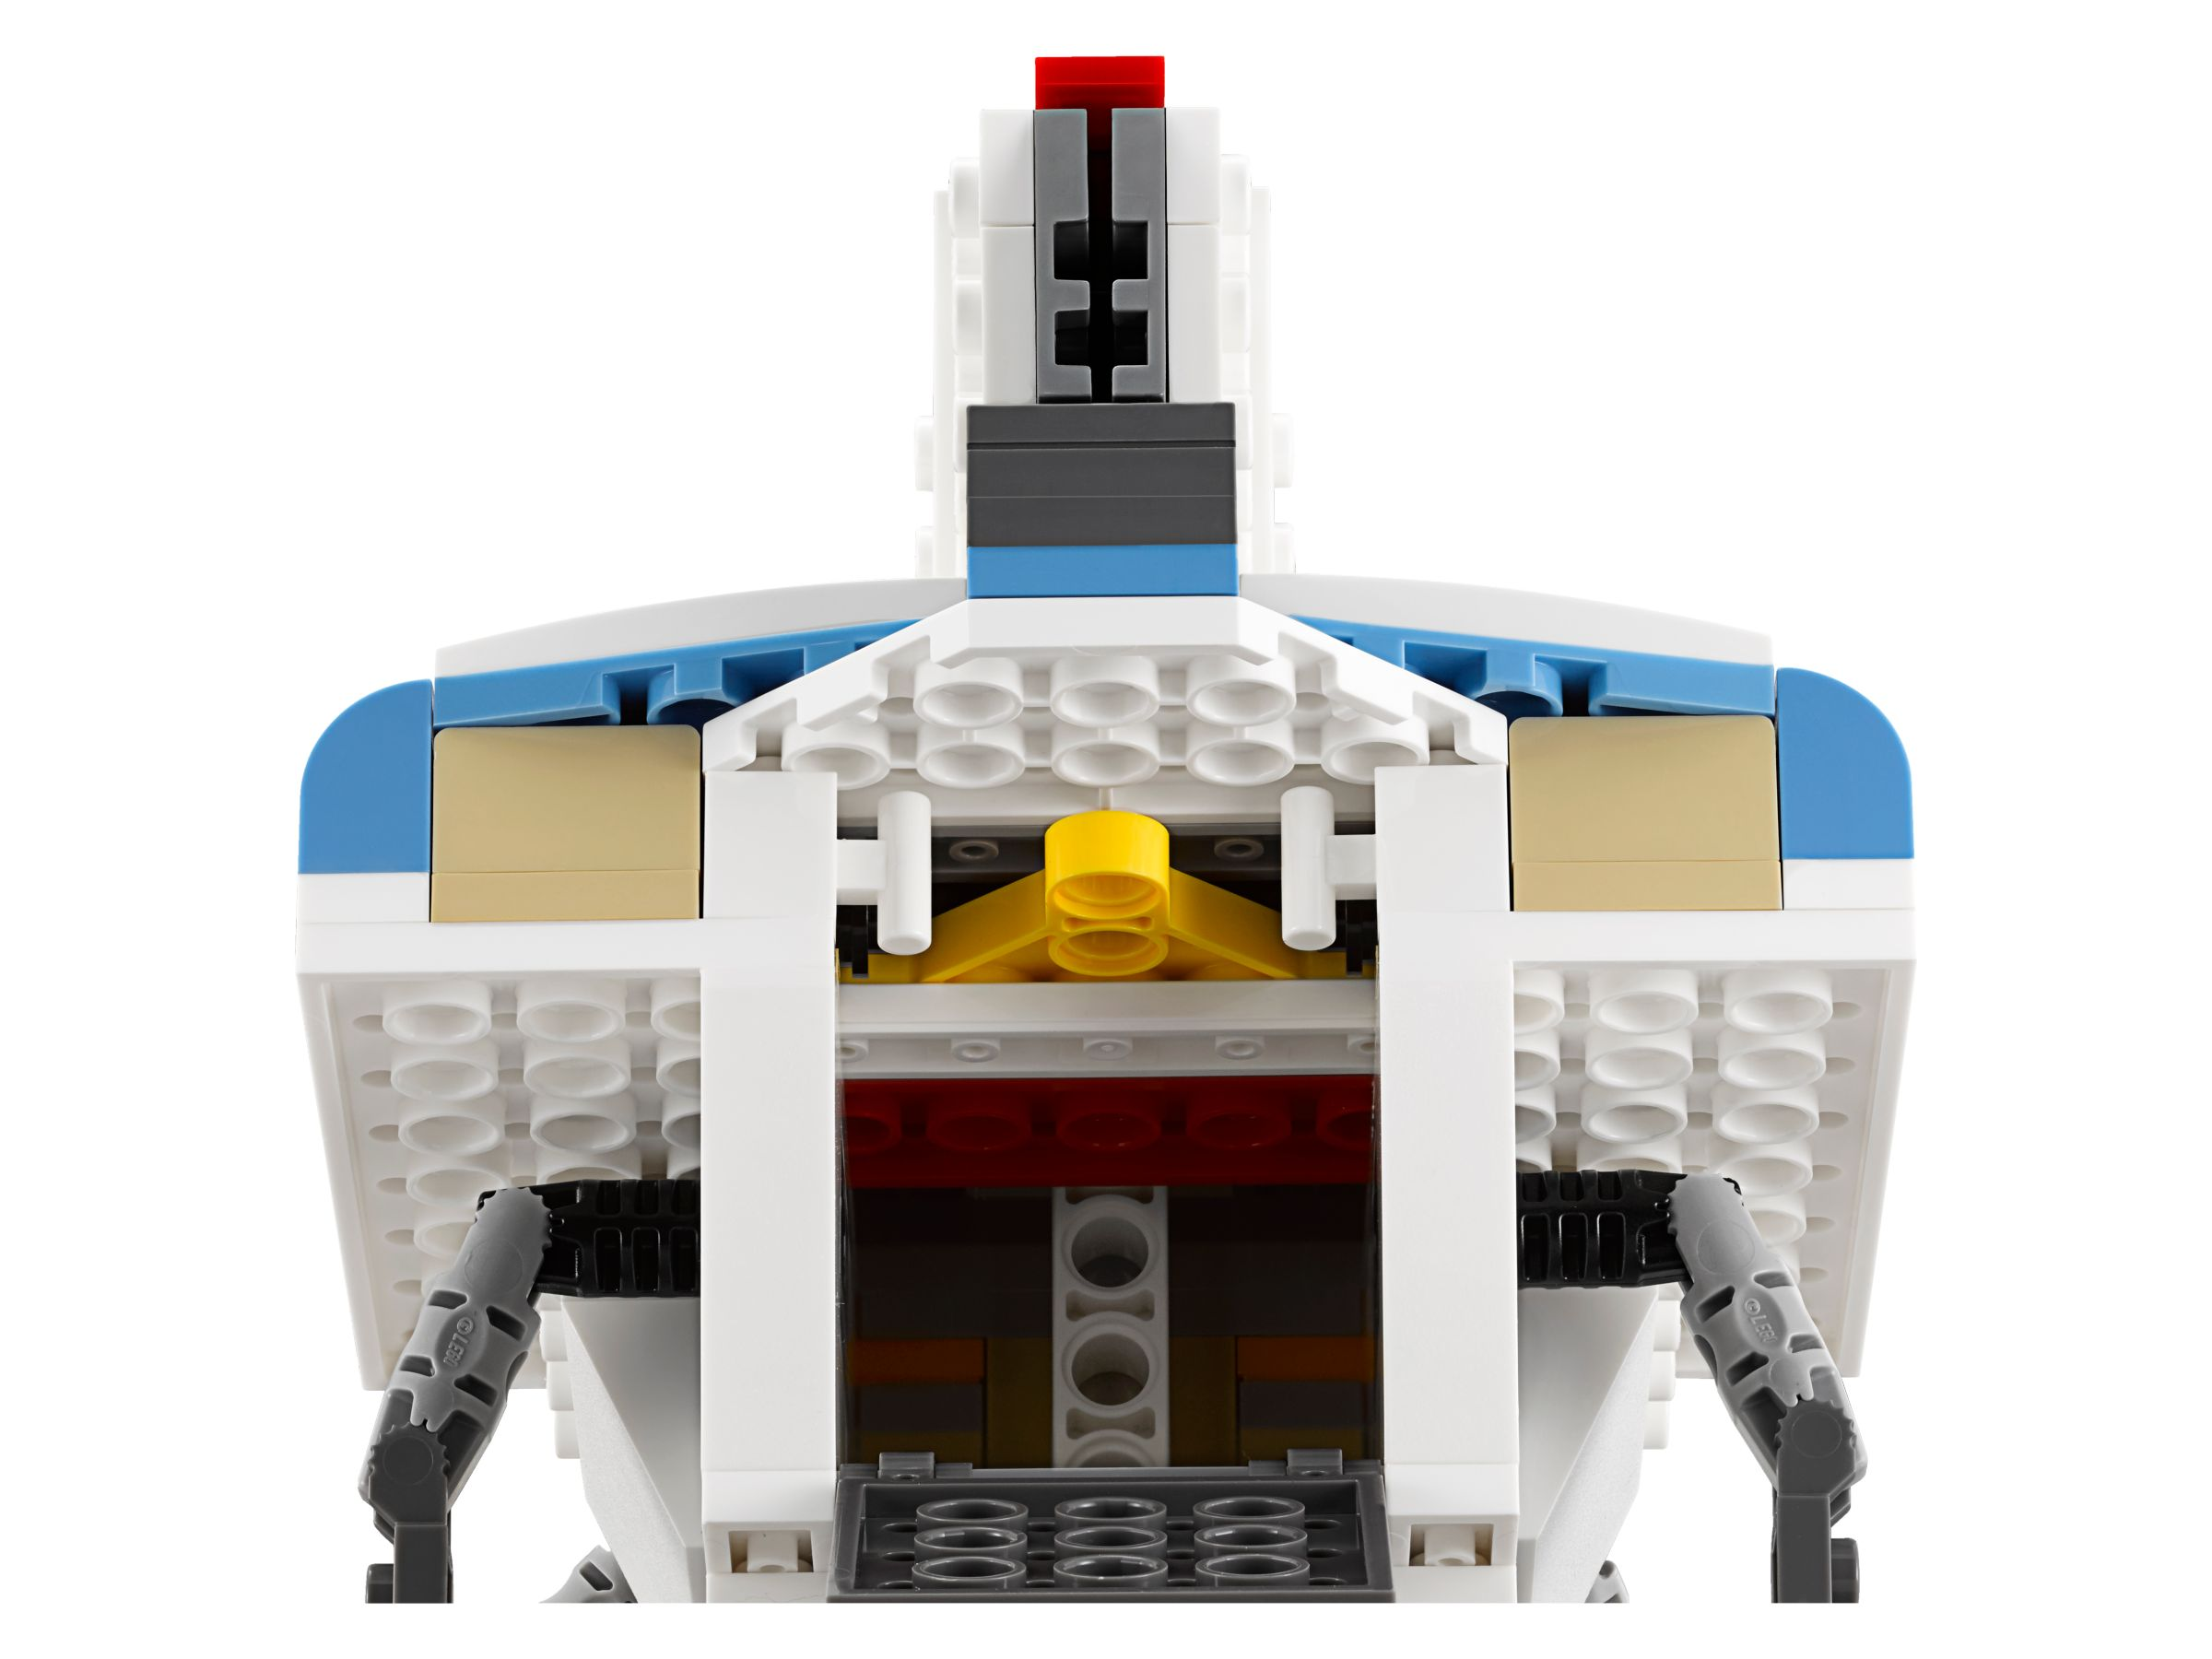 LEGO Star Wars 75170 The Phantom LEGO_75170_alt4.jpg